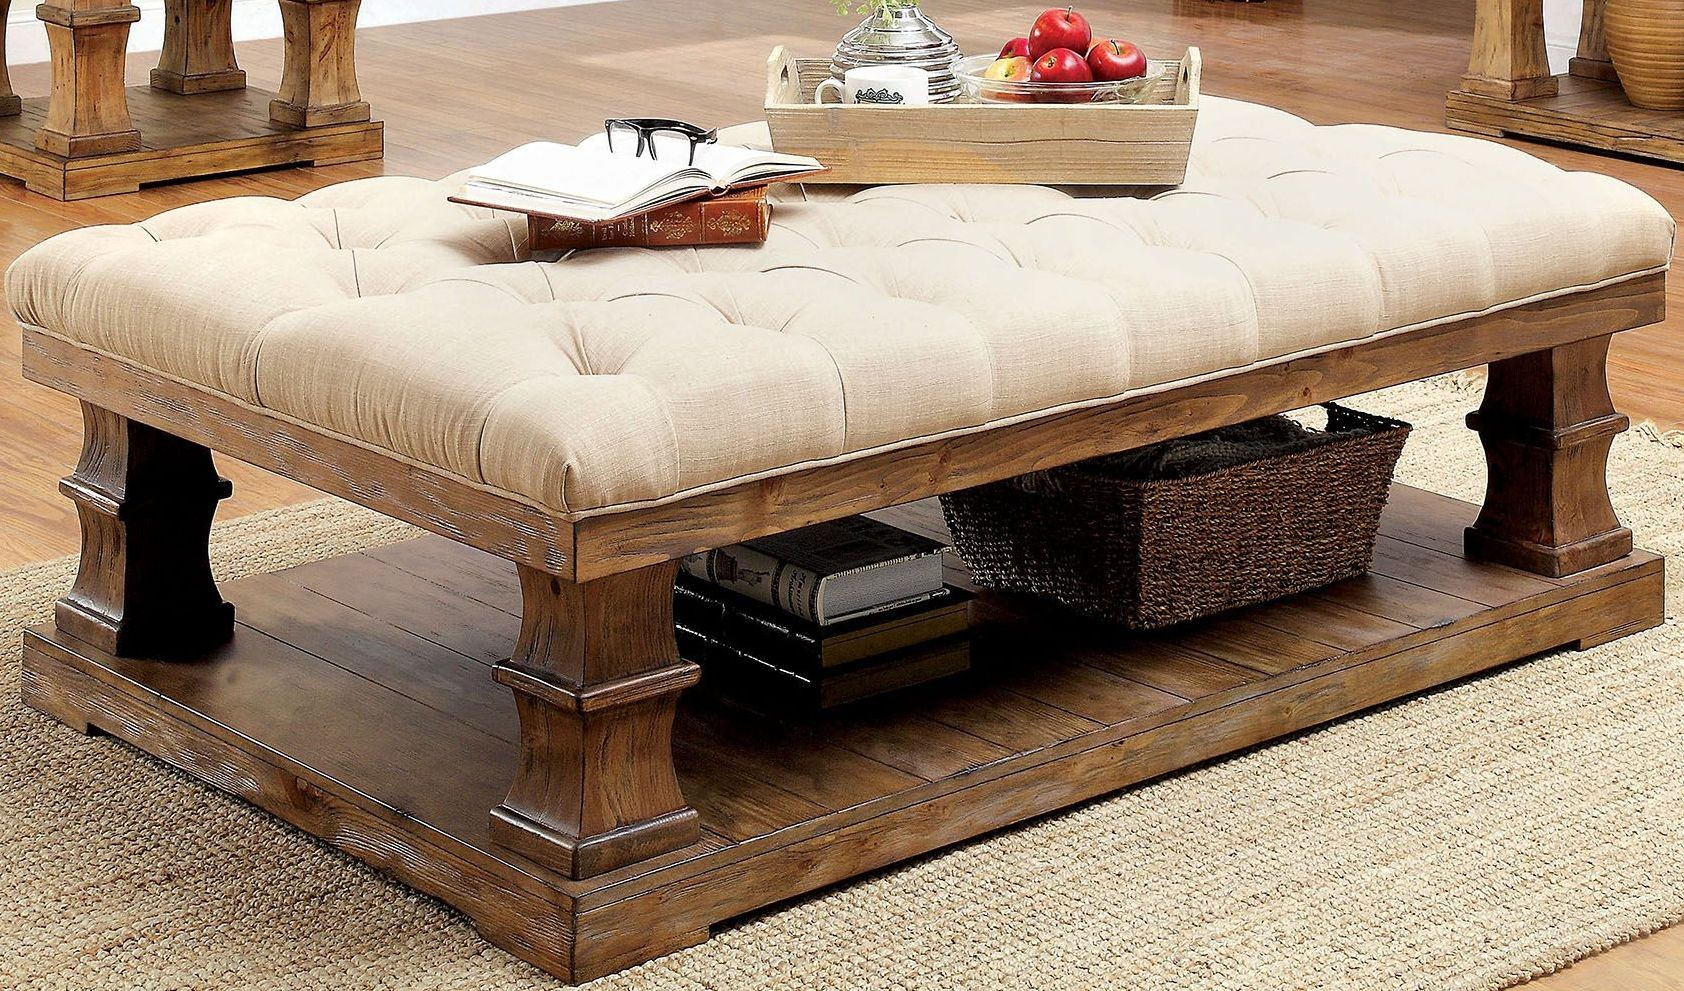 Granard Natural Tone Cushion Top Coffee Table From Furniture Of America Coleman Furniture